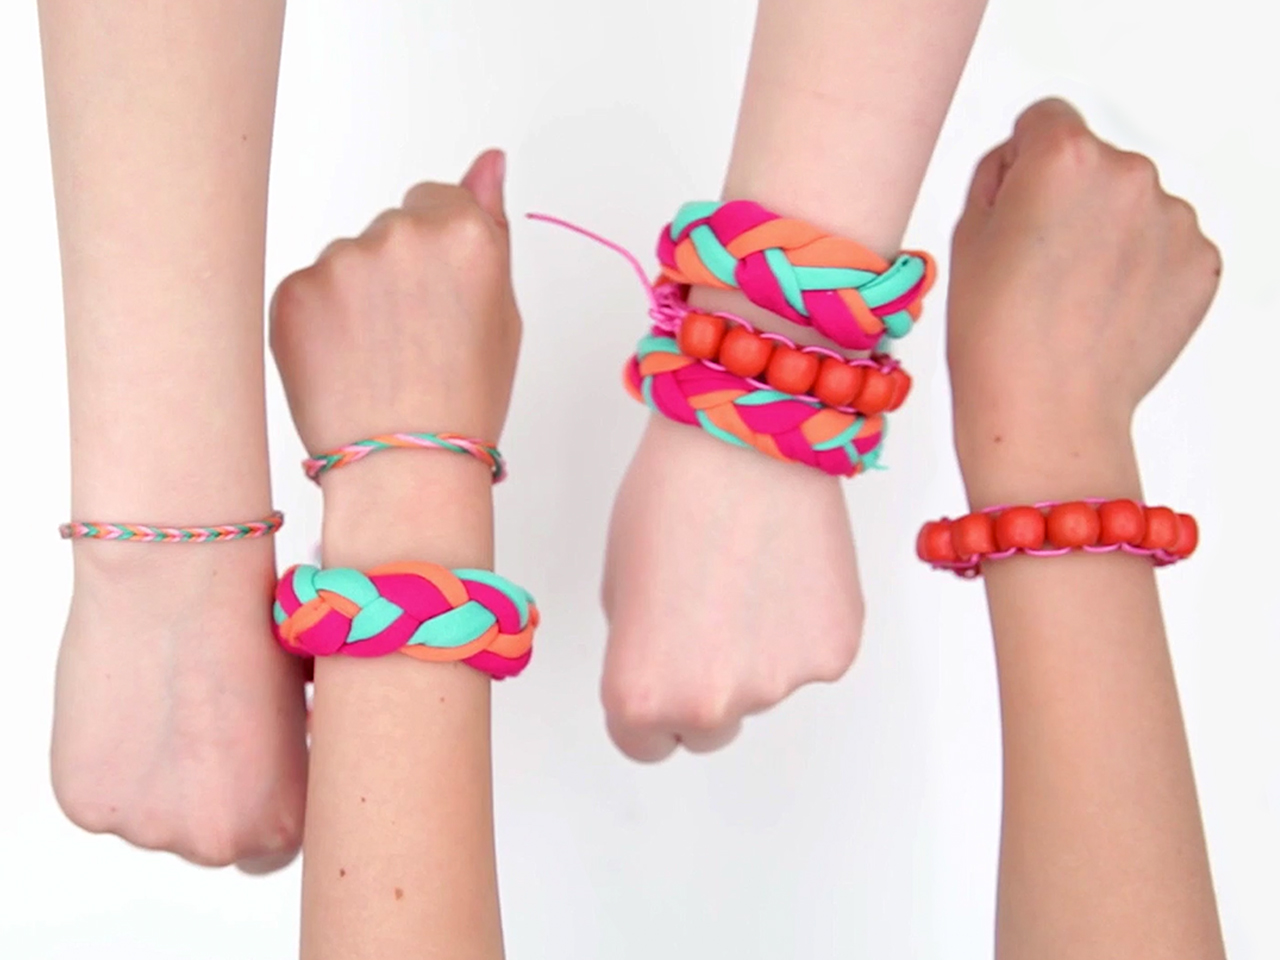 T-shirt Friendship Bracelets craft image. Follow the text below on how to make the craft.